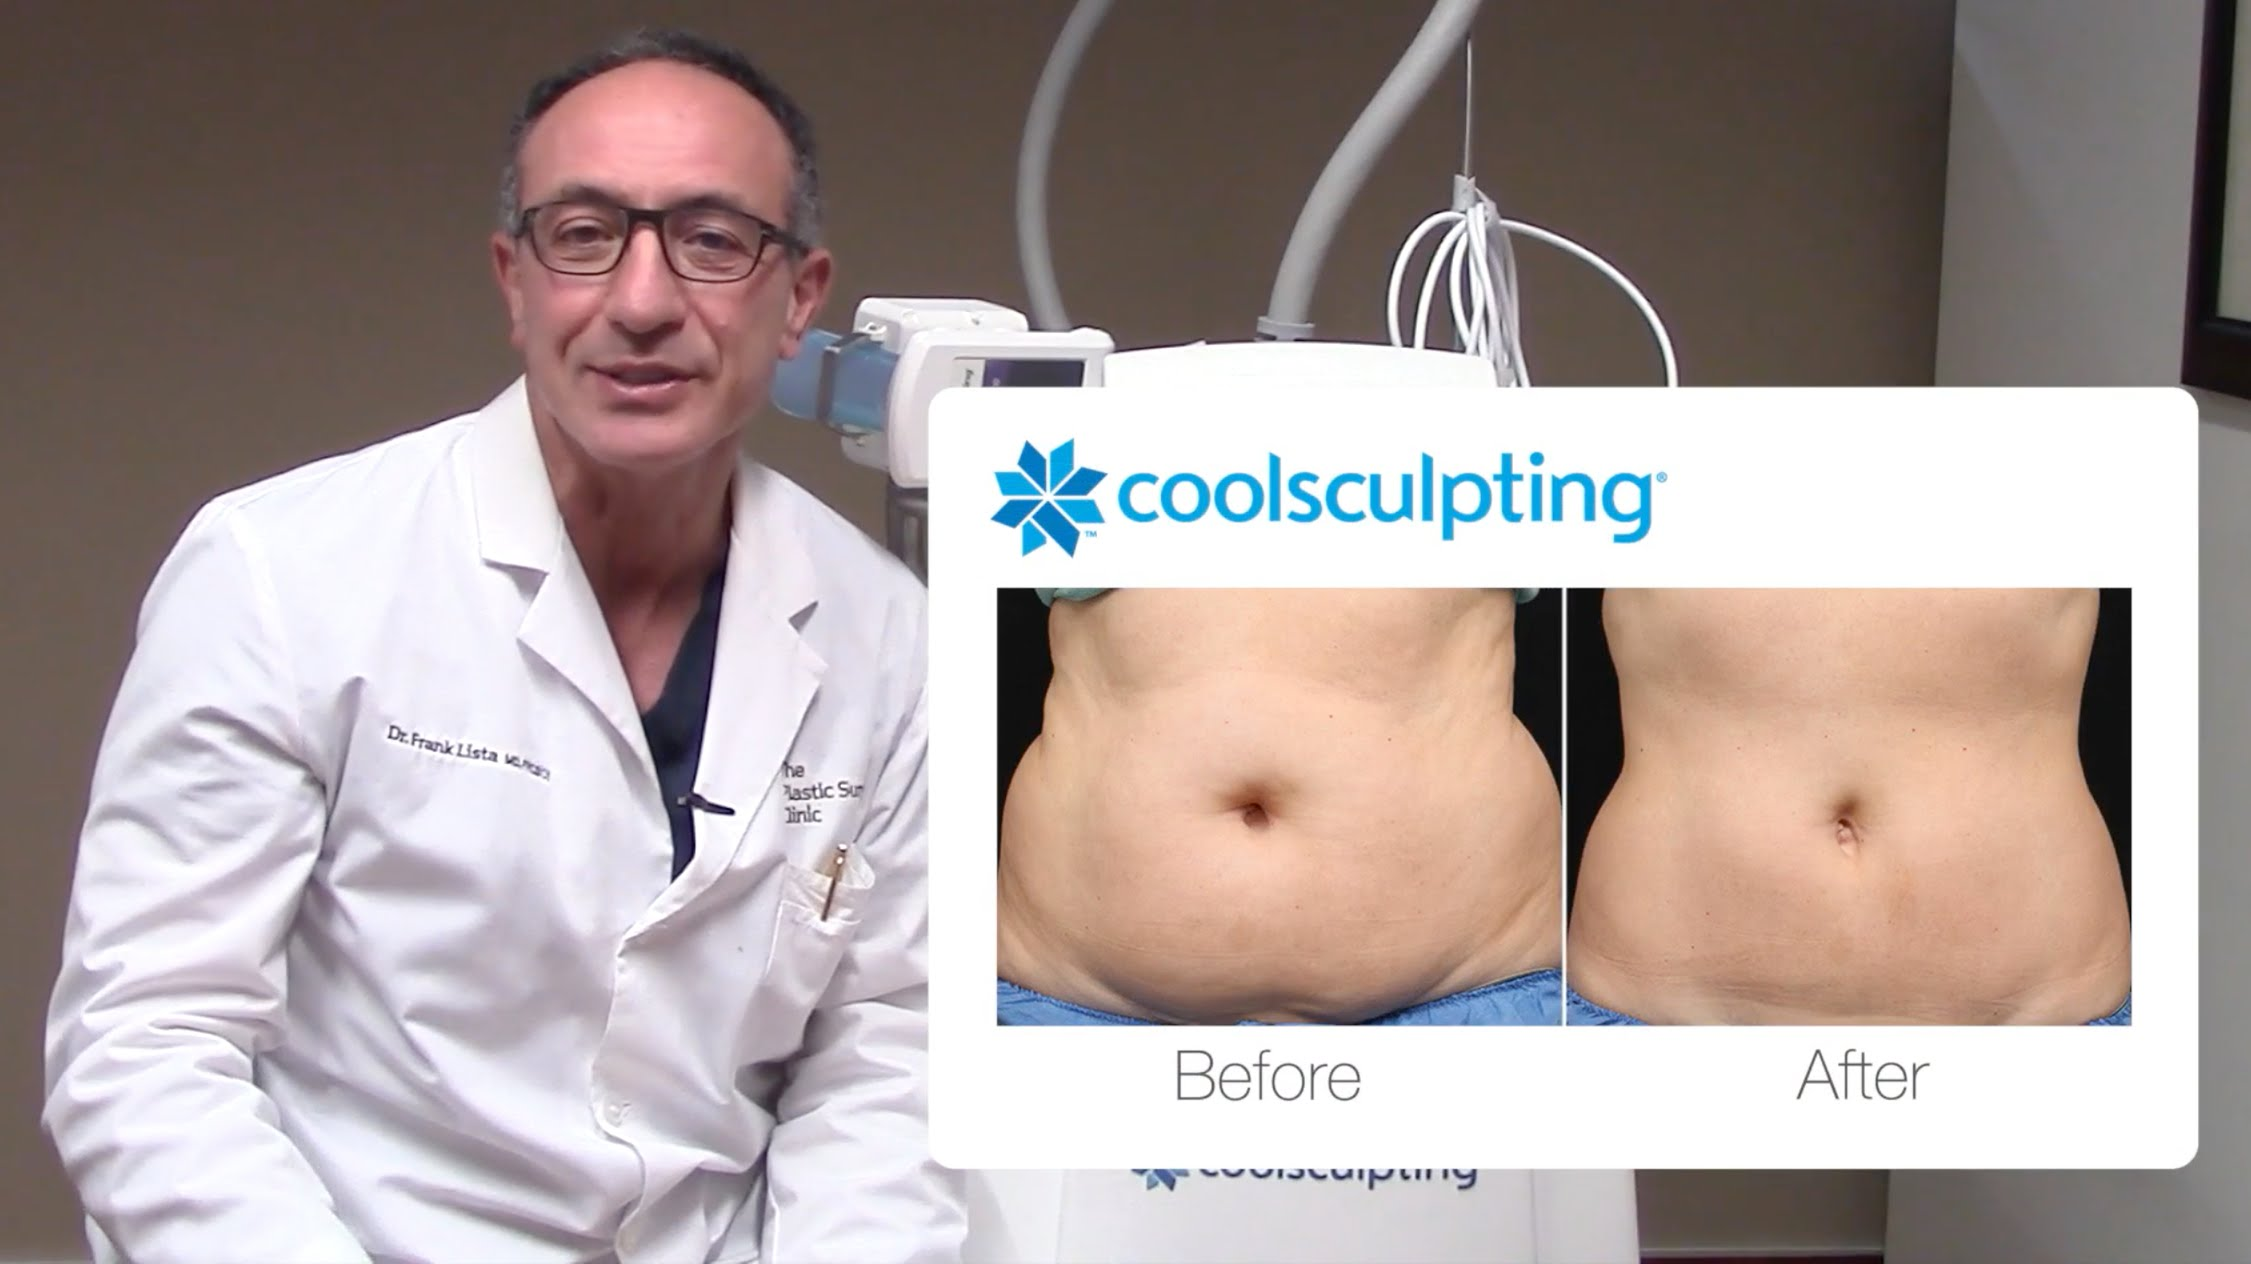 Dr. Lista on CoolSculpting